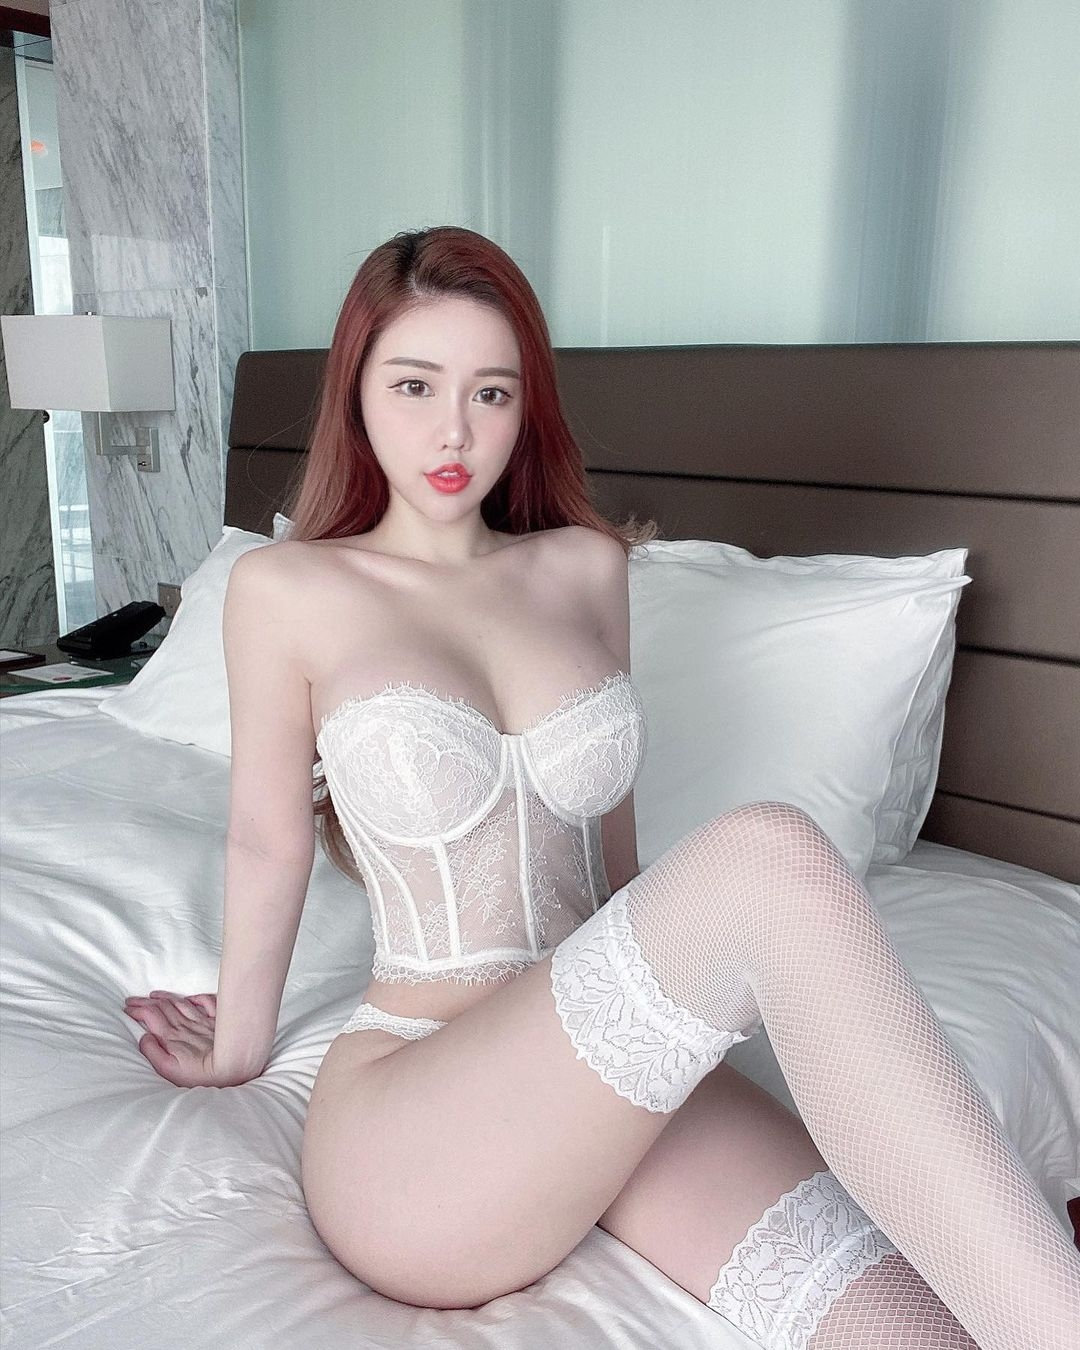 Jenna Chew Onlyfans Nude Gallery Leaked